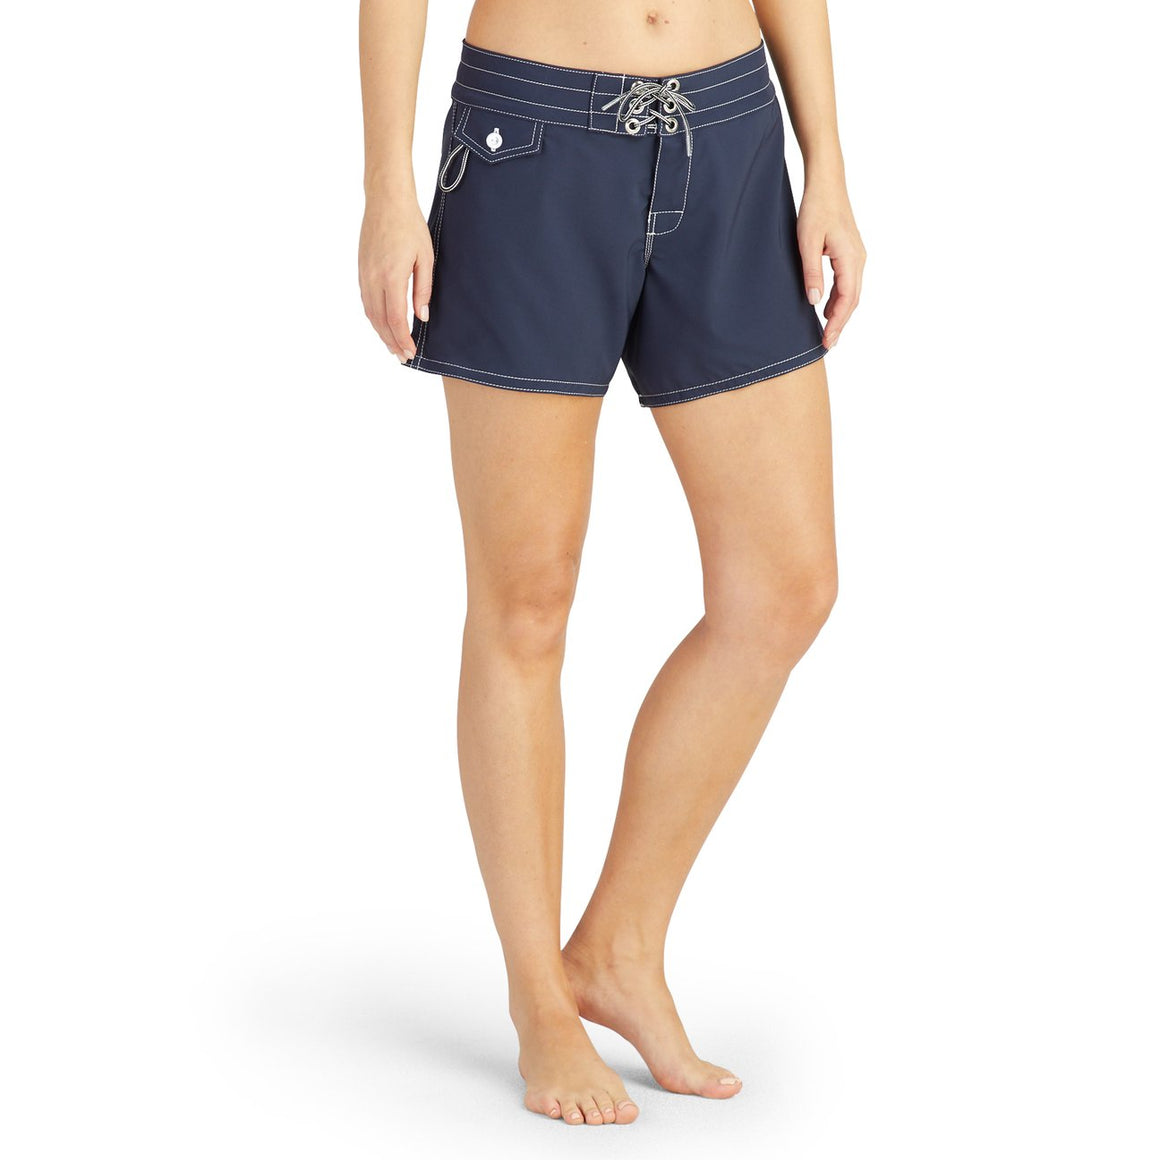 405 BOARD SHORTS - NAVY